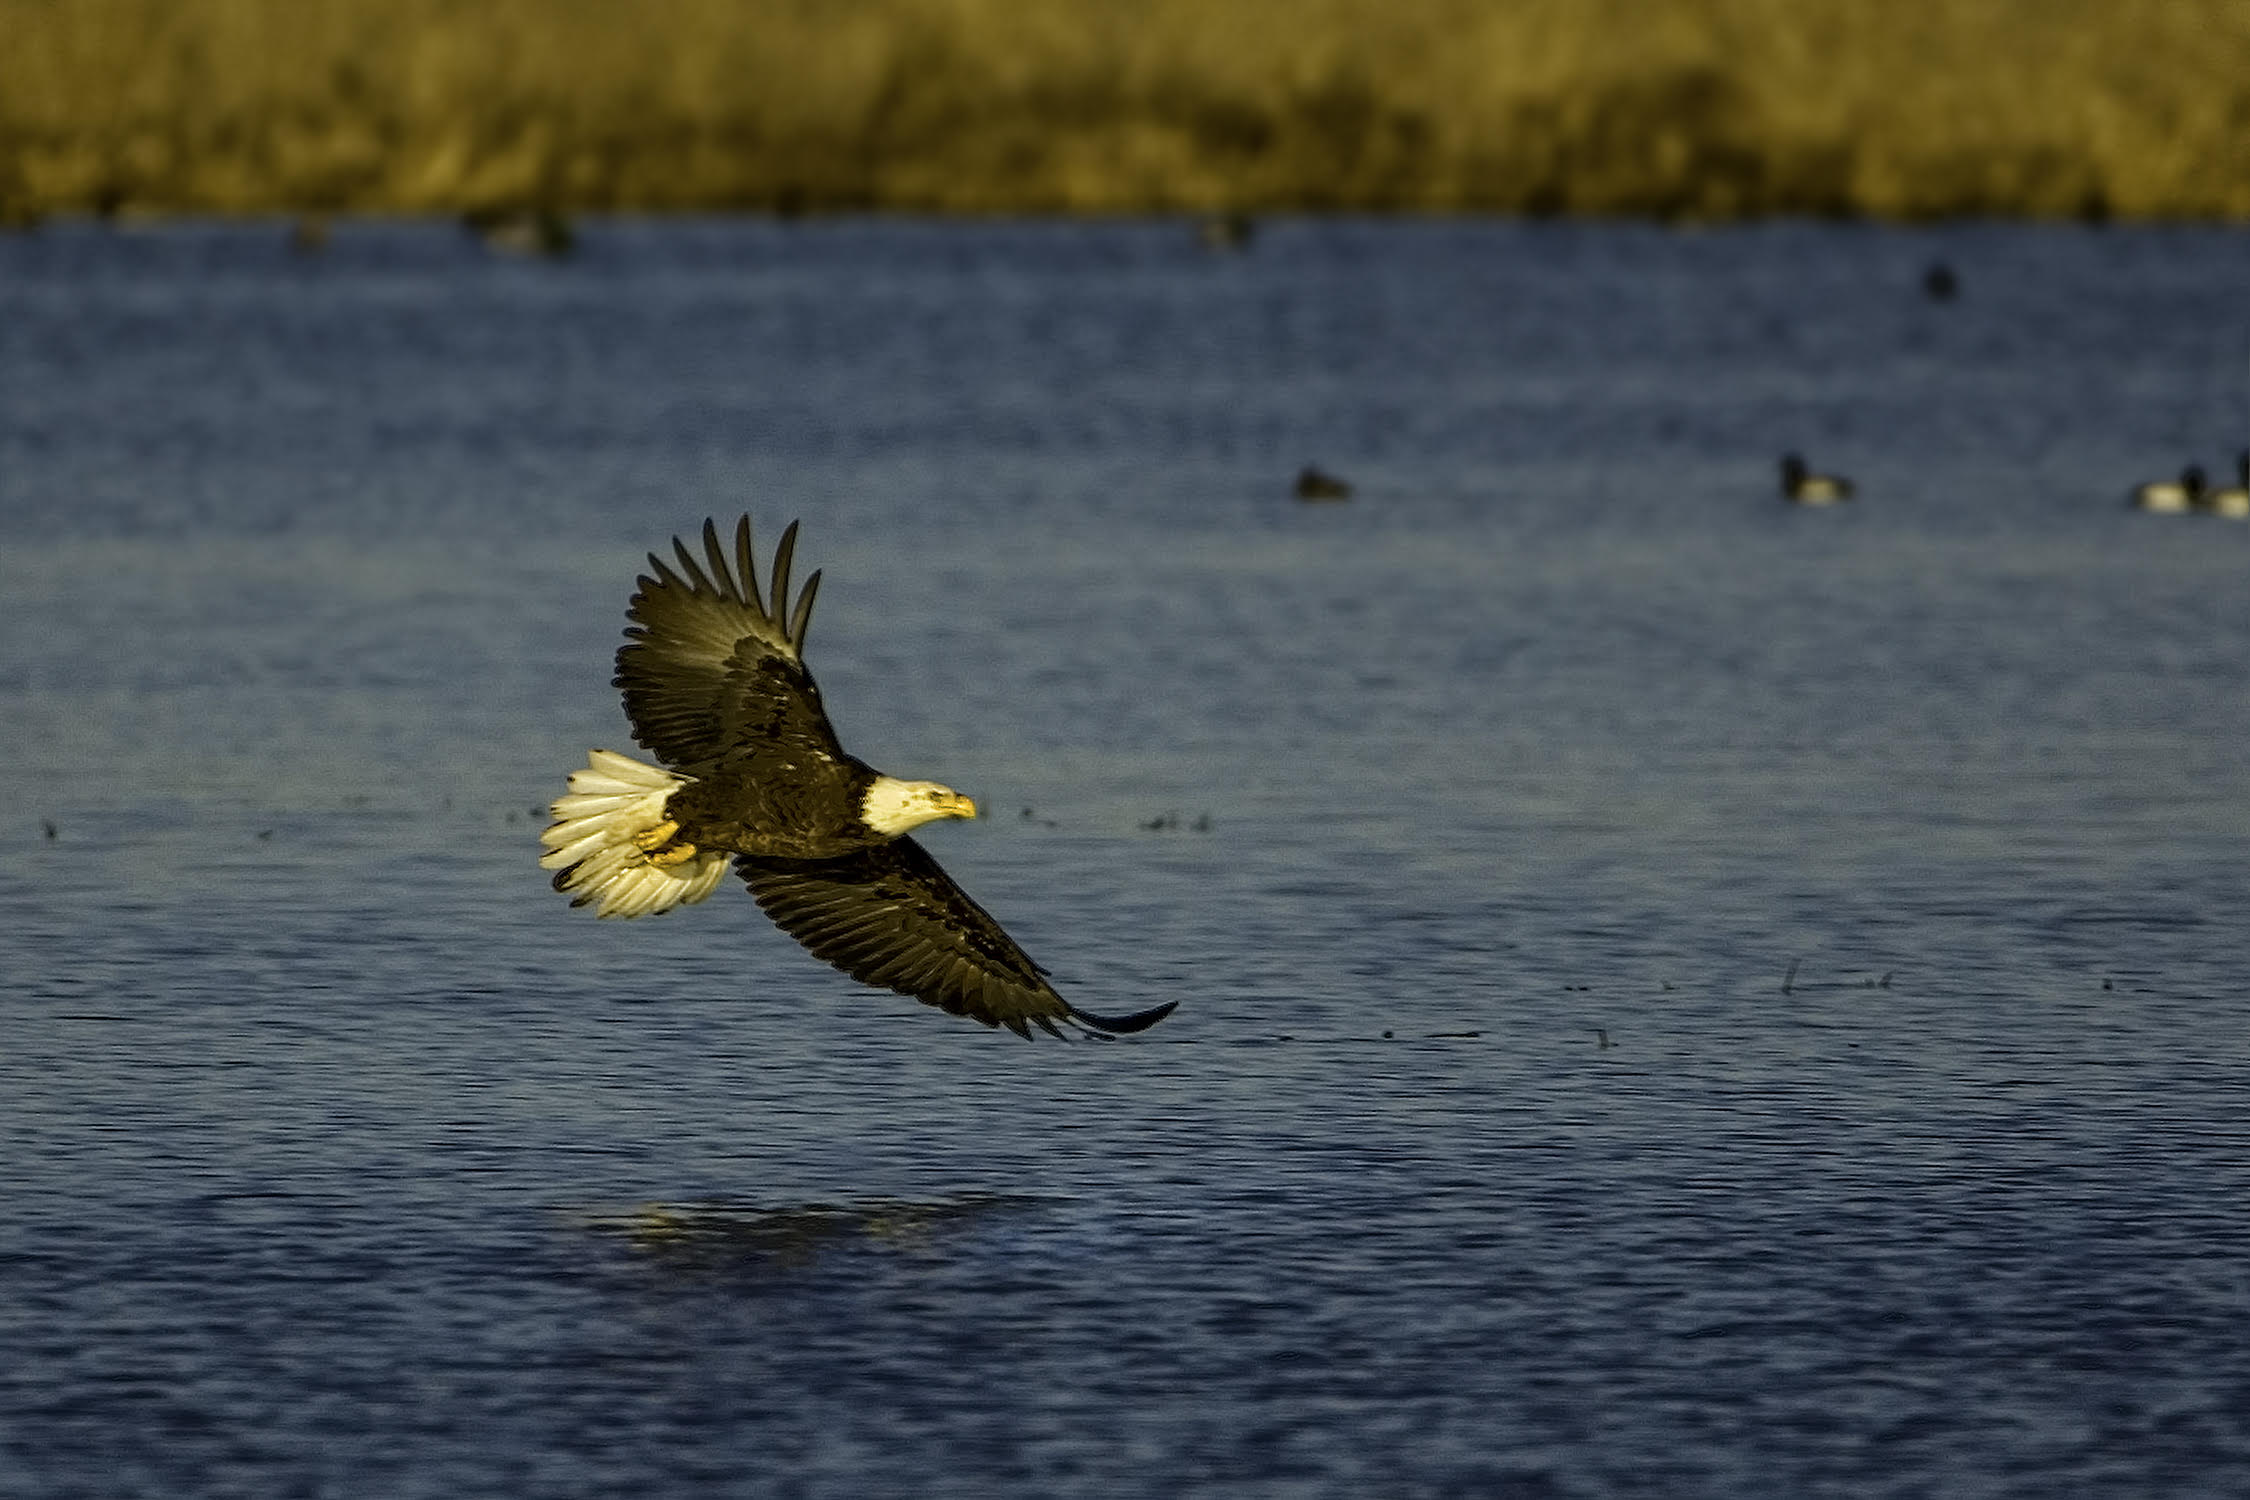 A visit from a top predator can clear the waters of Goose Pond quickly. Photo by Richard Armstrong